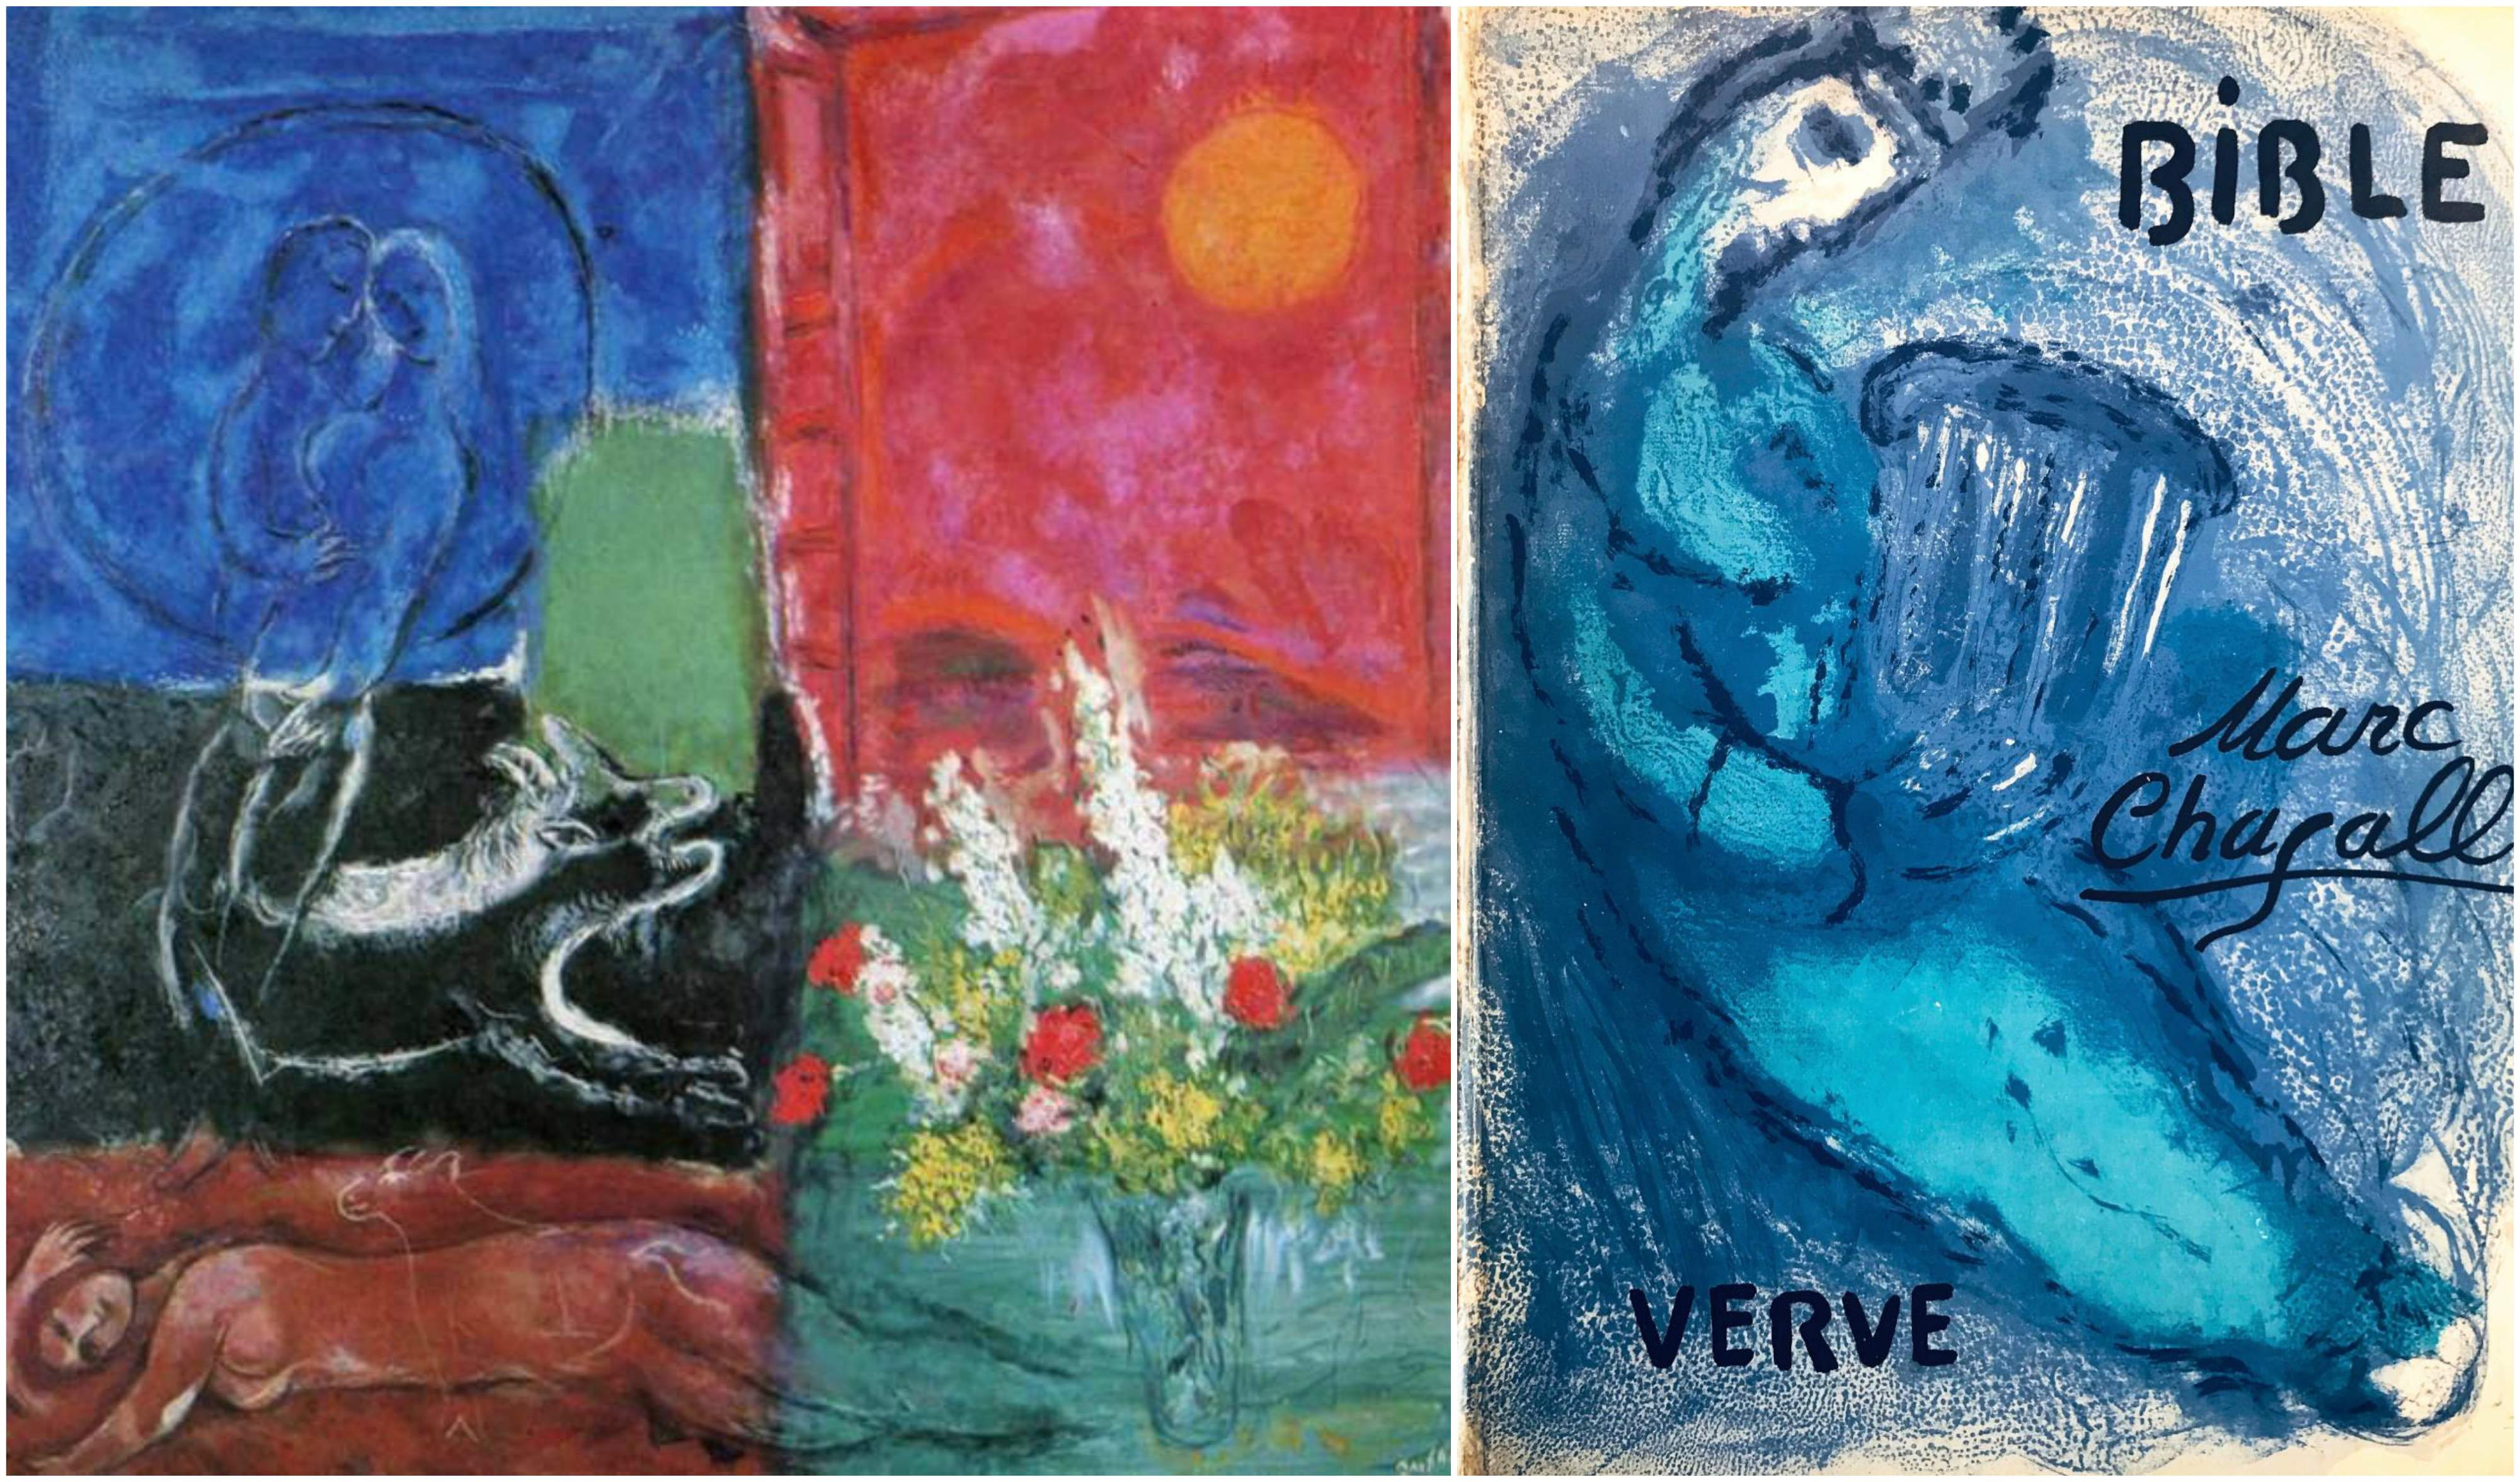 collage poros et bible verve